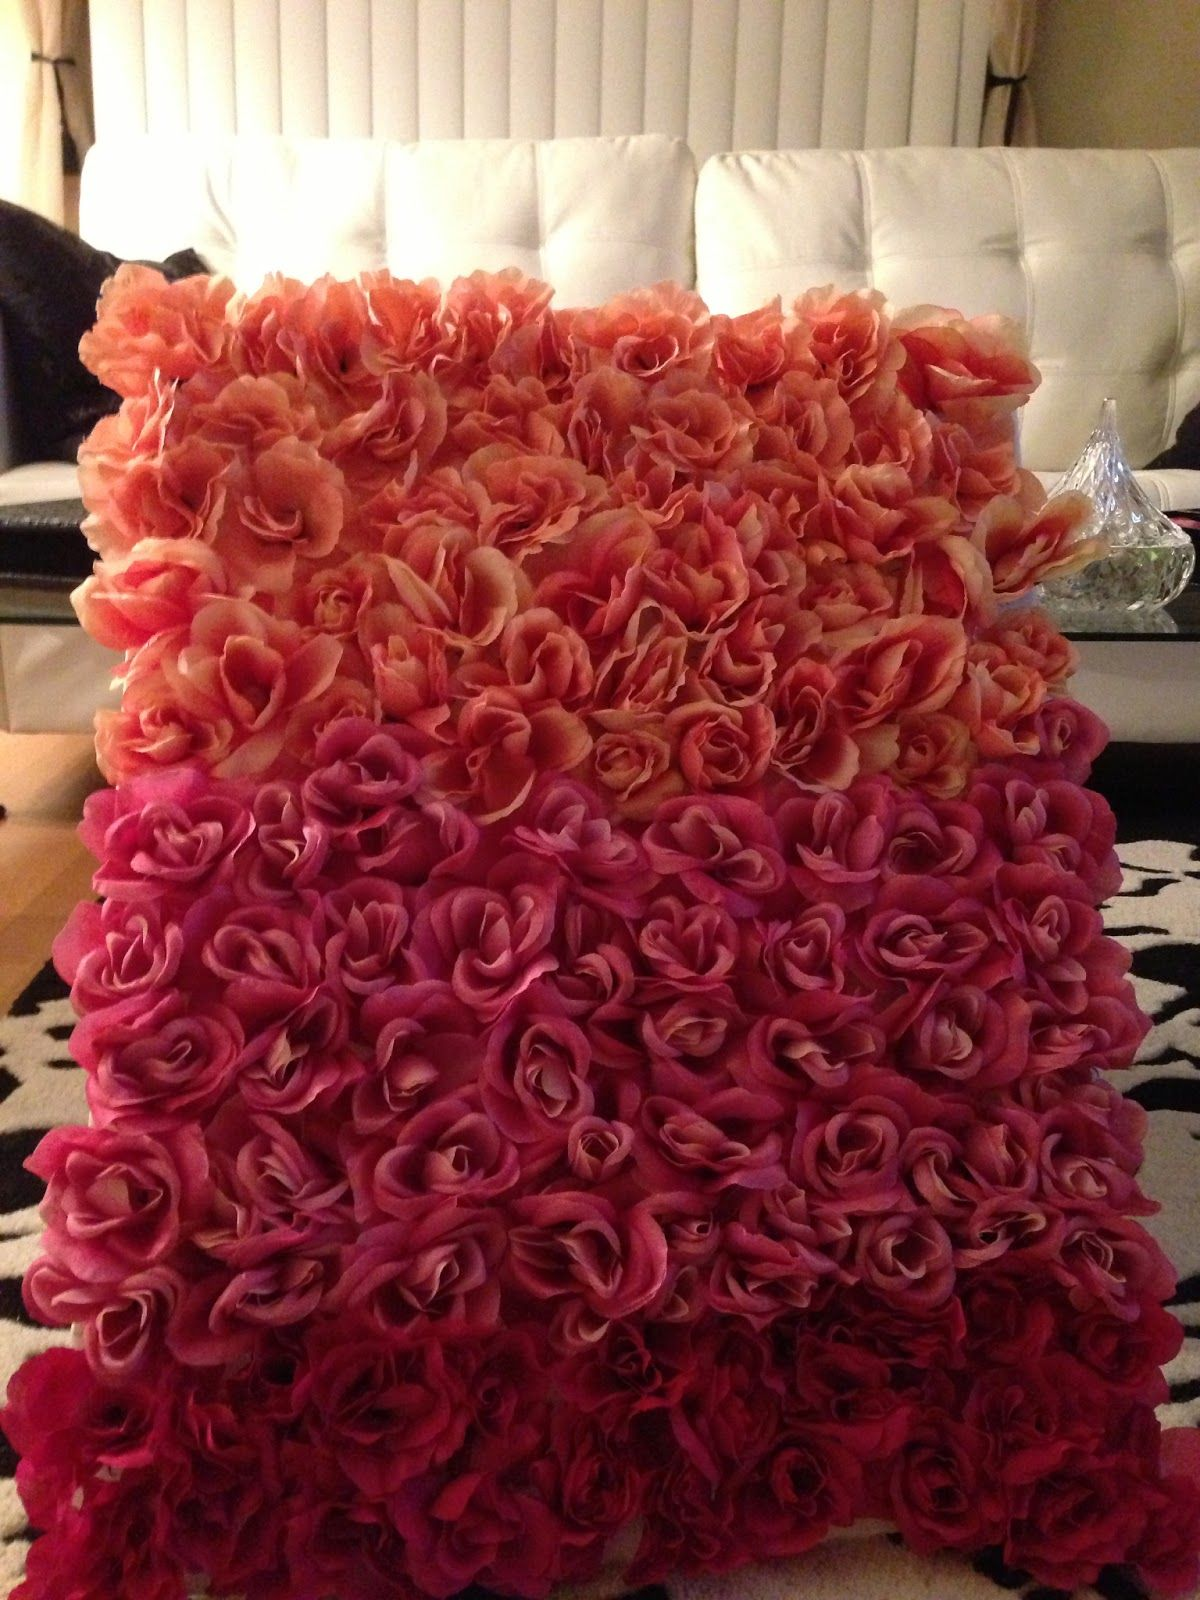 Diy Wall Flowers: This Person Used A Simple Foam Board And Bundles Of